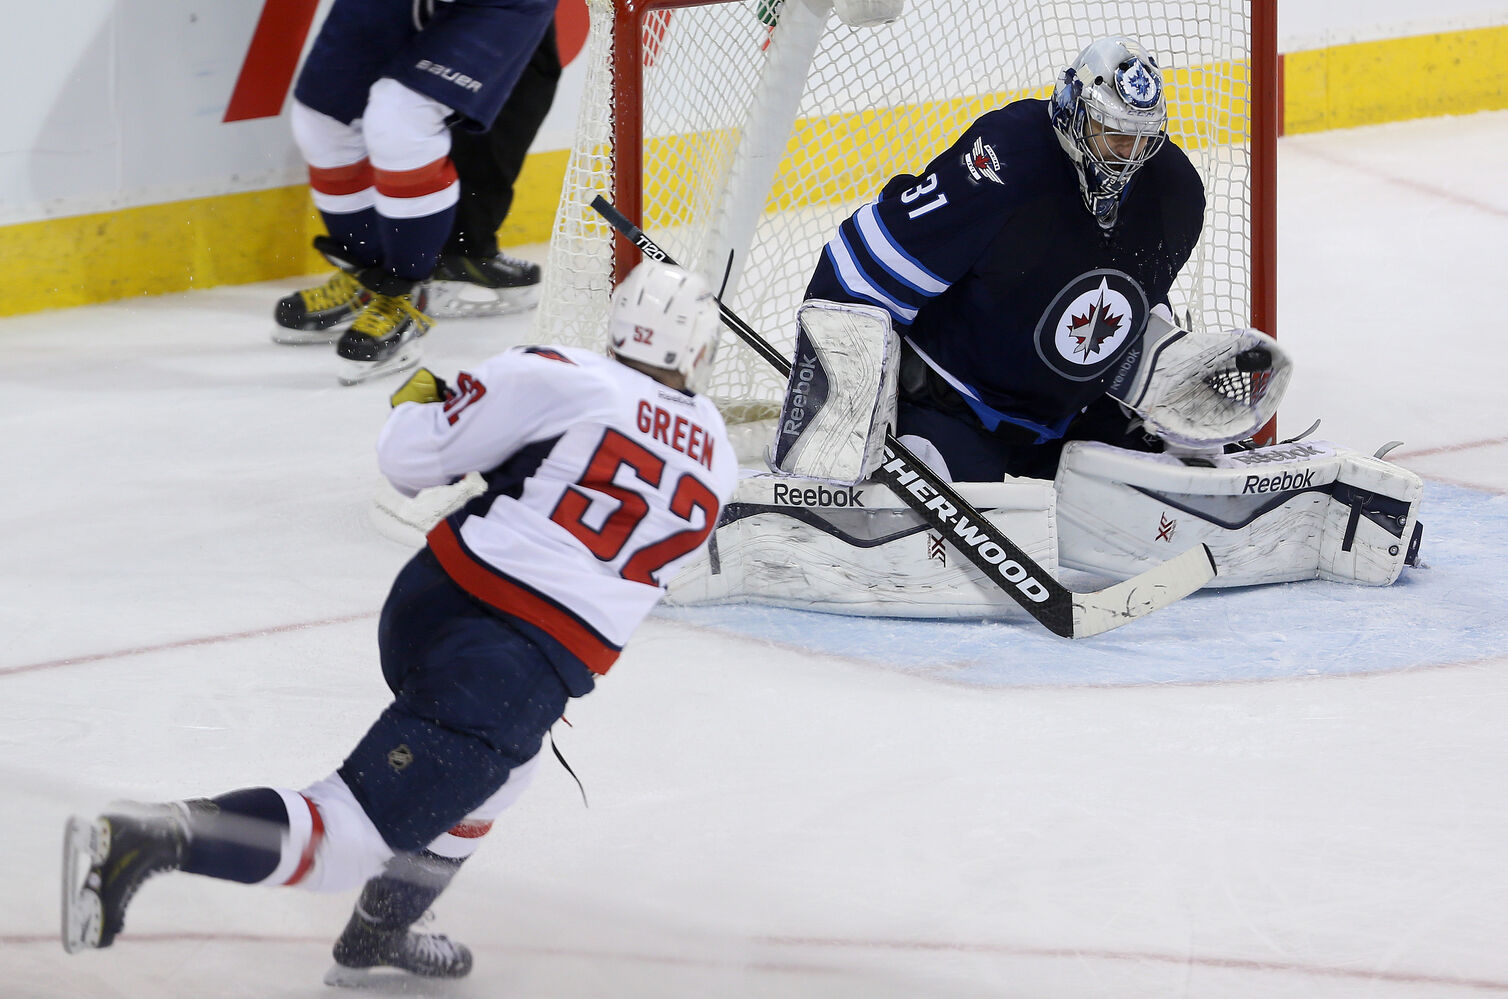 Ondrej Pavelec denies the Caps' Mike Green, as he did all the Caps who tried to penetrate the fortress that was his net Saturday night.  (Trevor Hagan / Winnipeg Free Press)